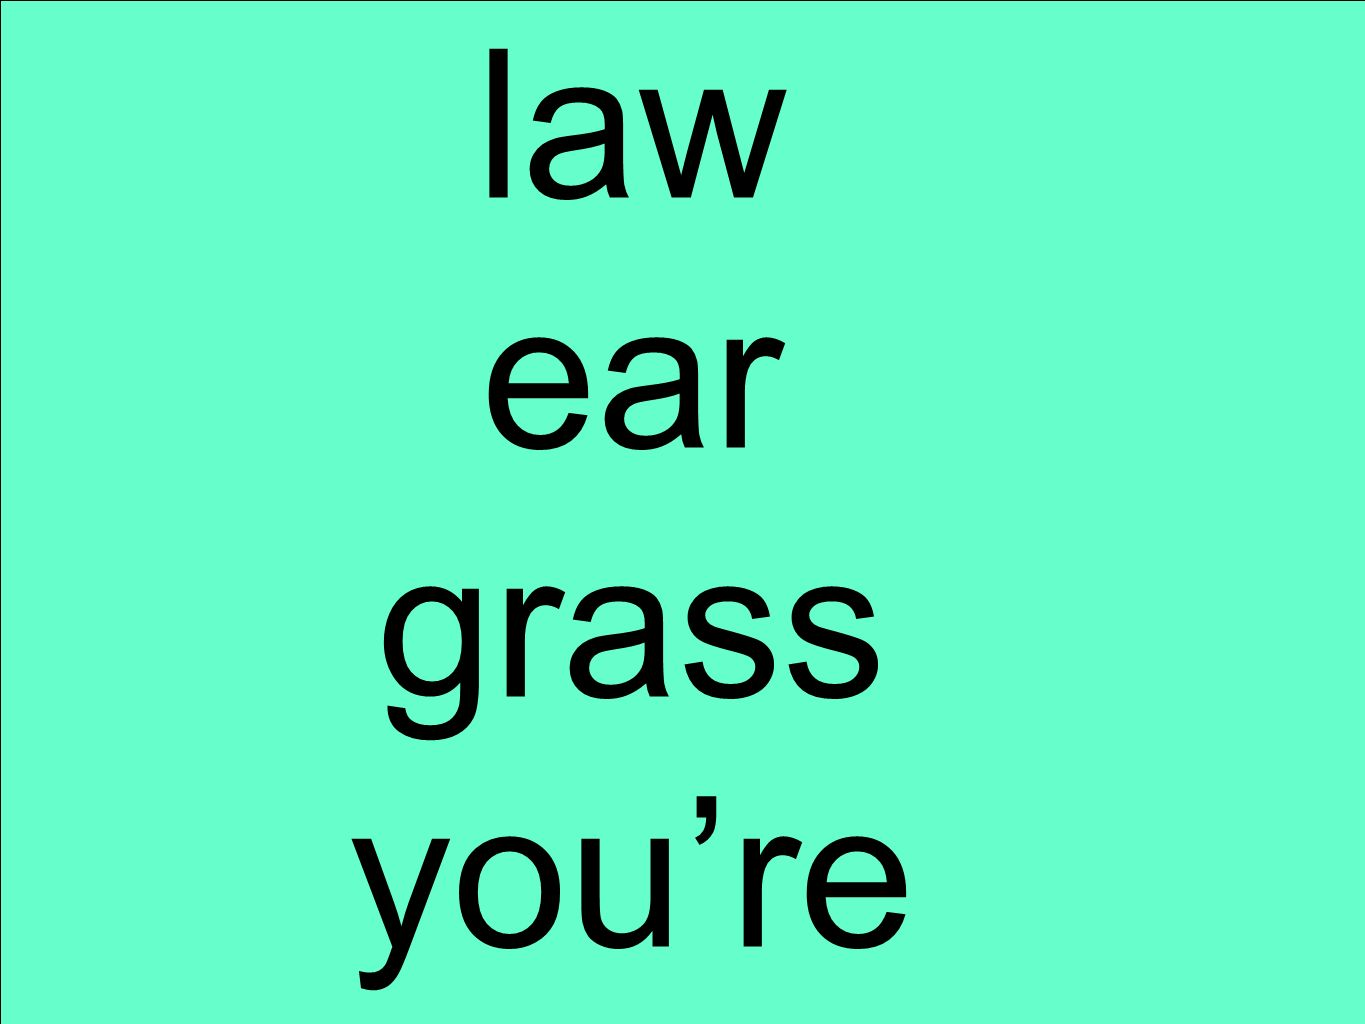 law ear grass youre